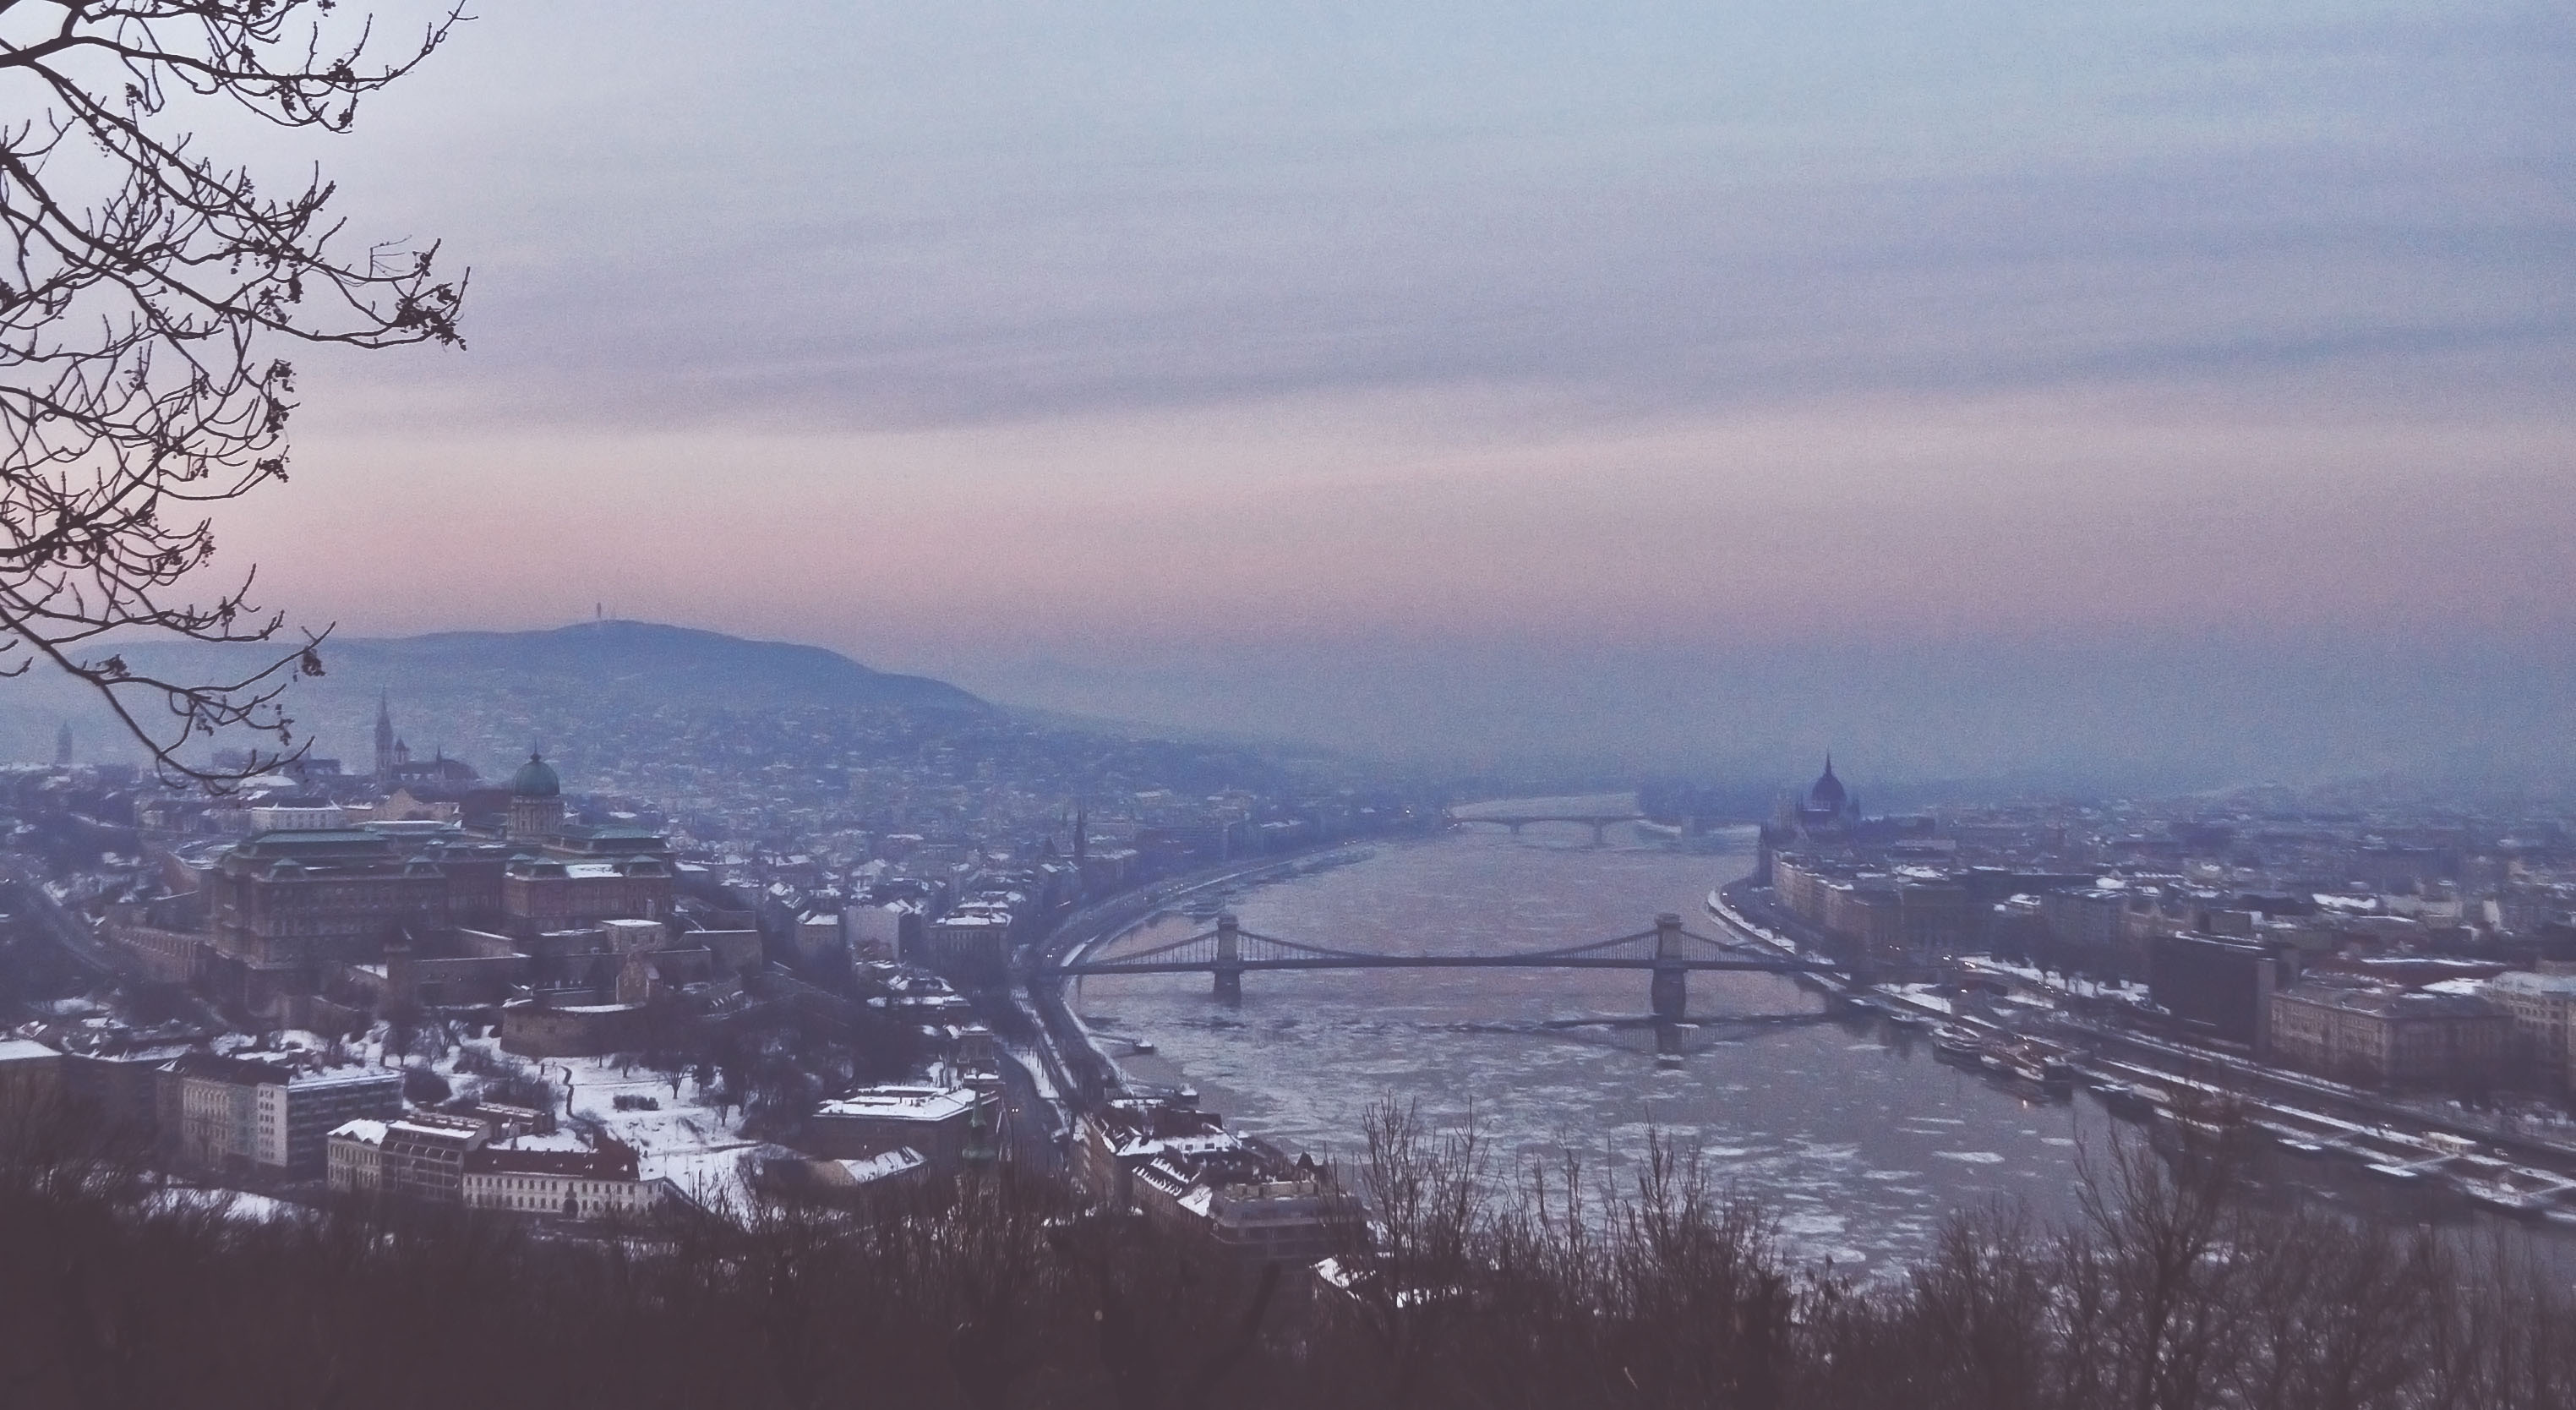 budapest-view-over